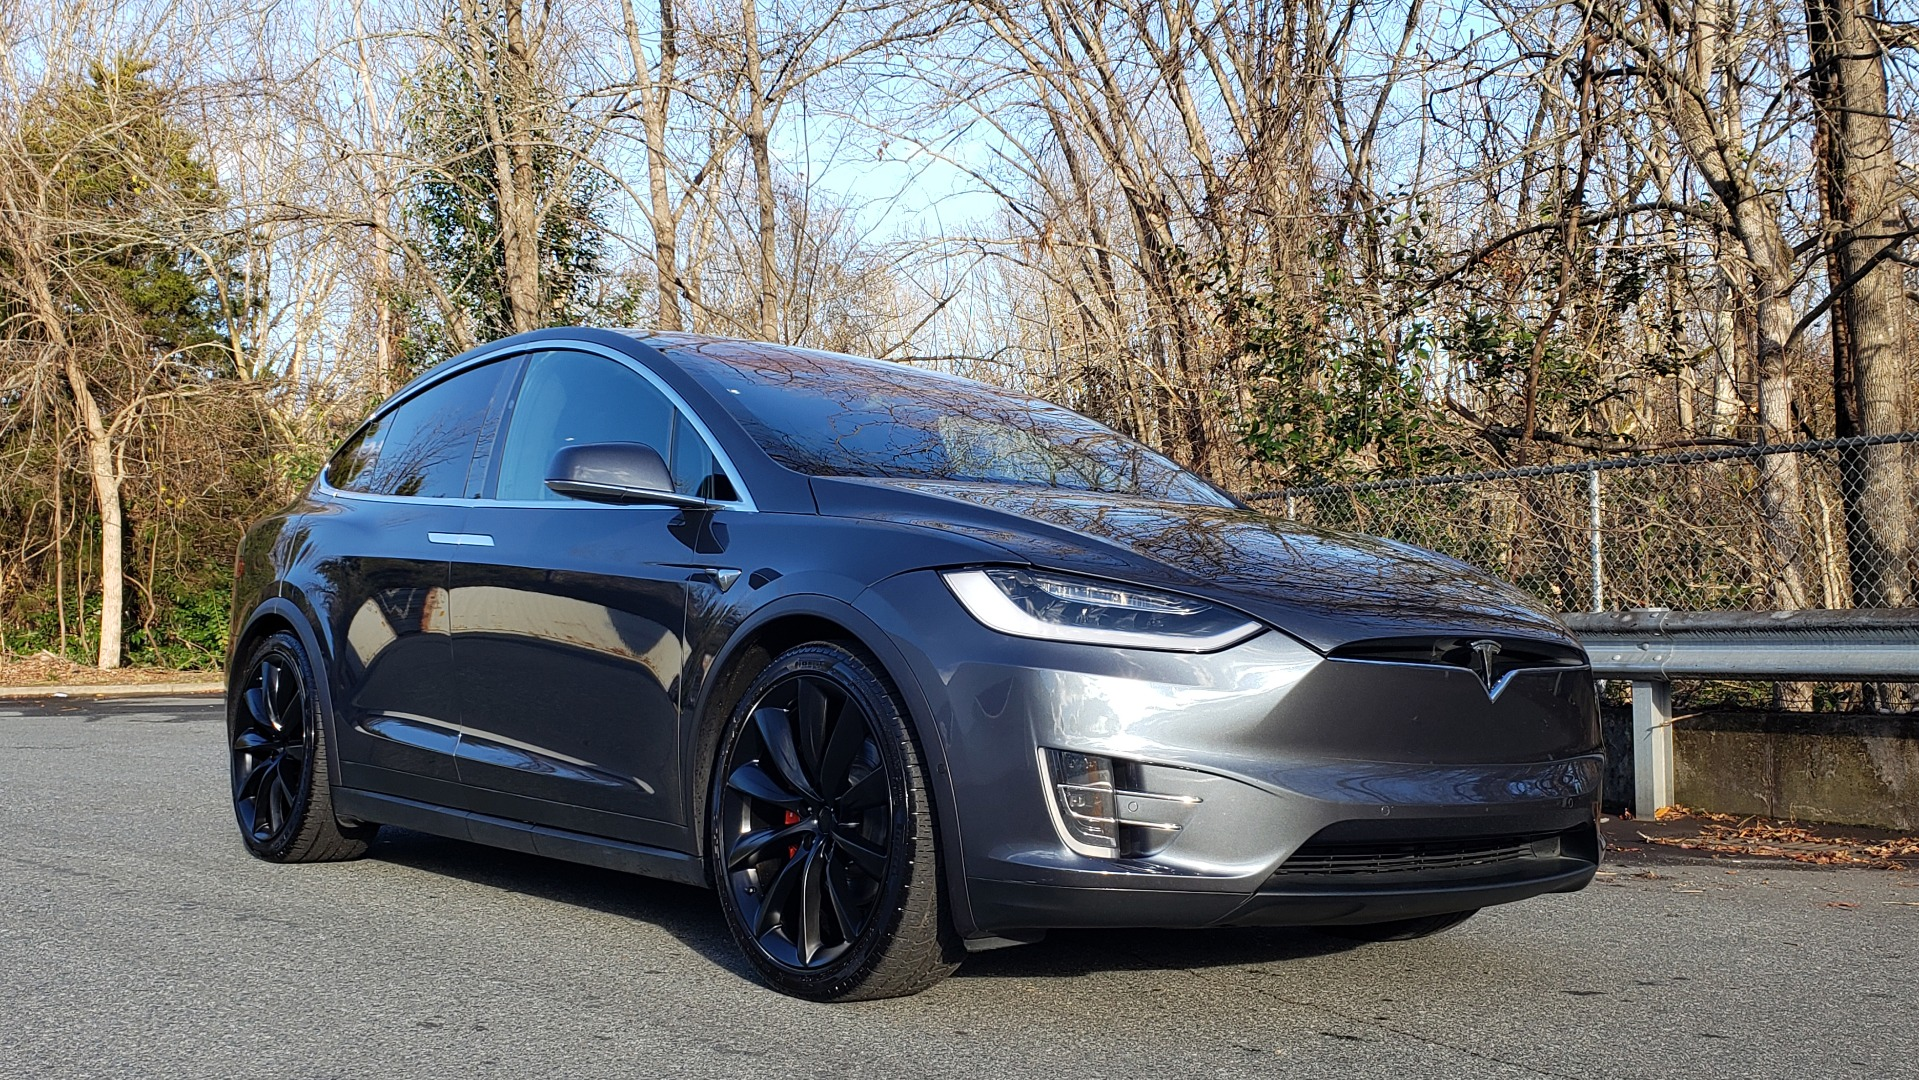 Used 2016 Tesla MODEL X P100D LUDICROUS PERF / PREM / TECH / AUTO PILOT / TOWING for sale Sold at Formula Imports in Charlotte NC 28227 9